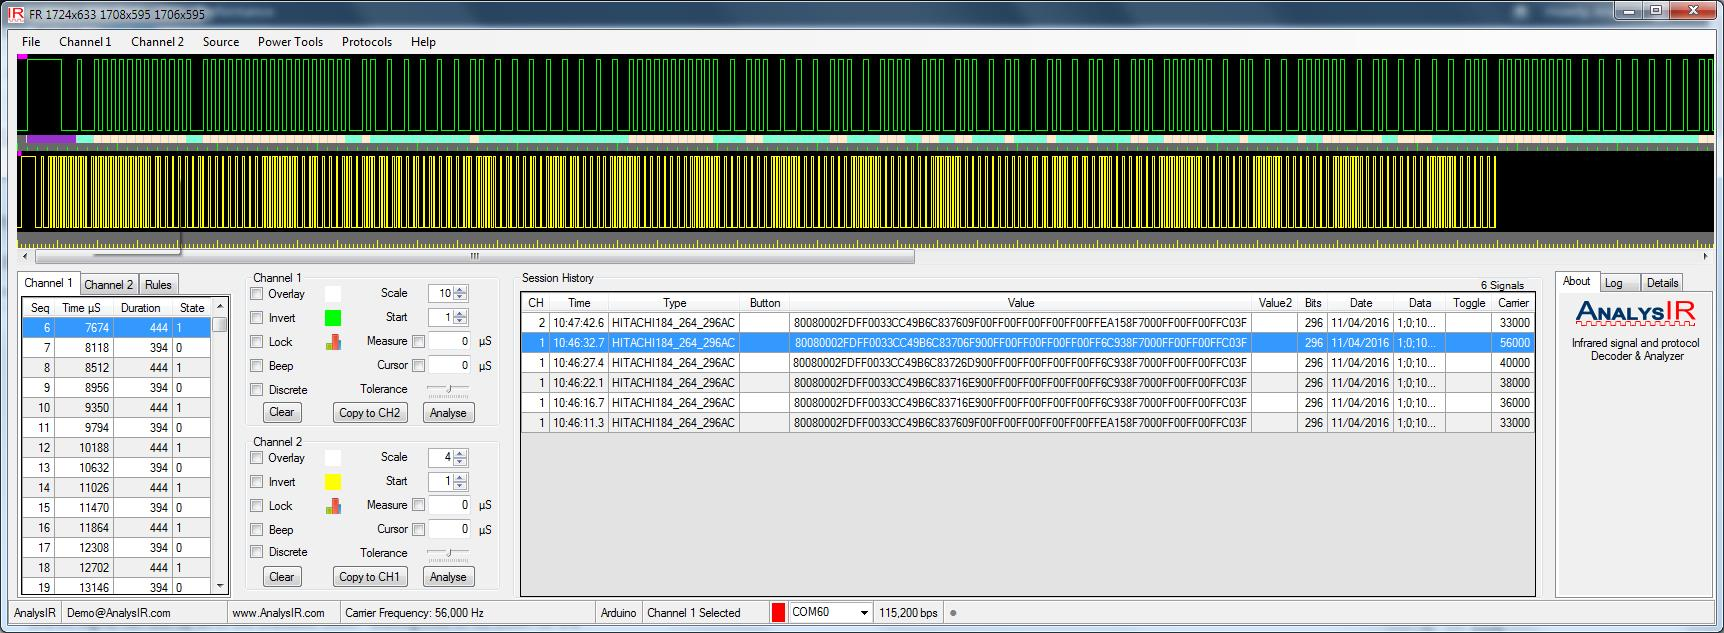 AnalysIR screen-shot showing the signals captured from the sendRAW_Flash sketch